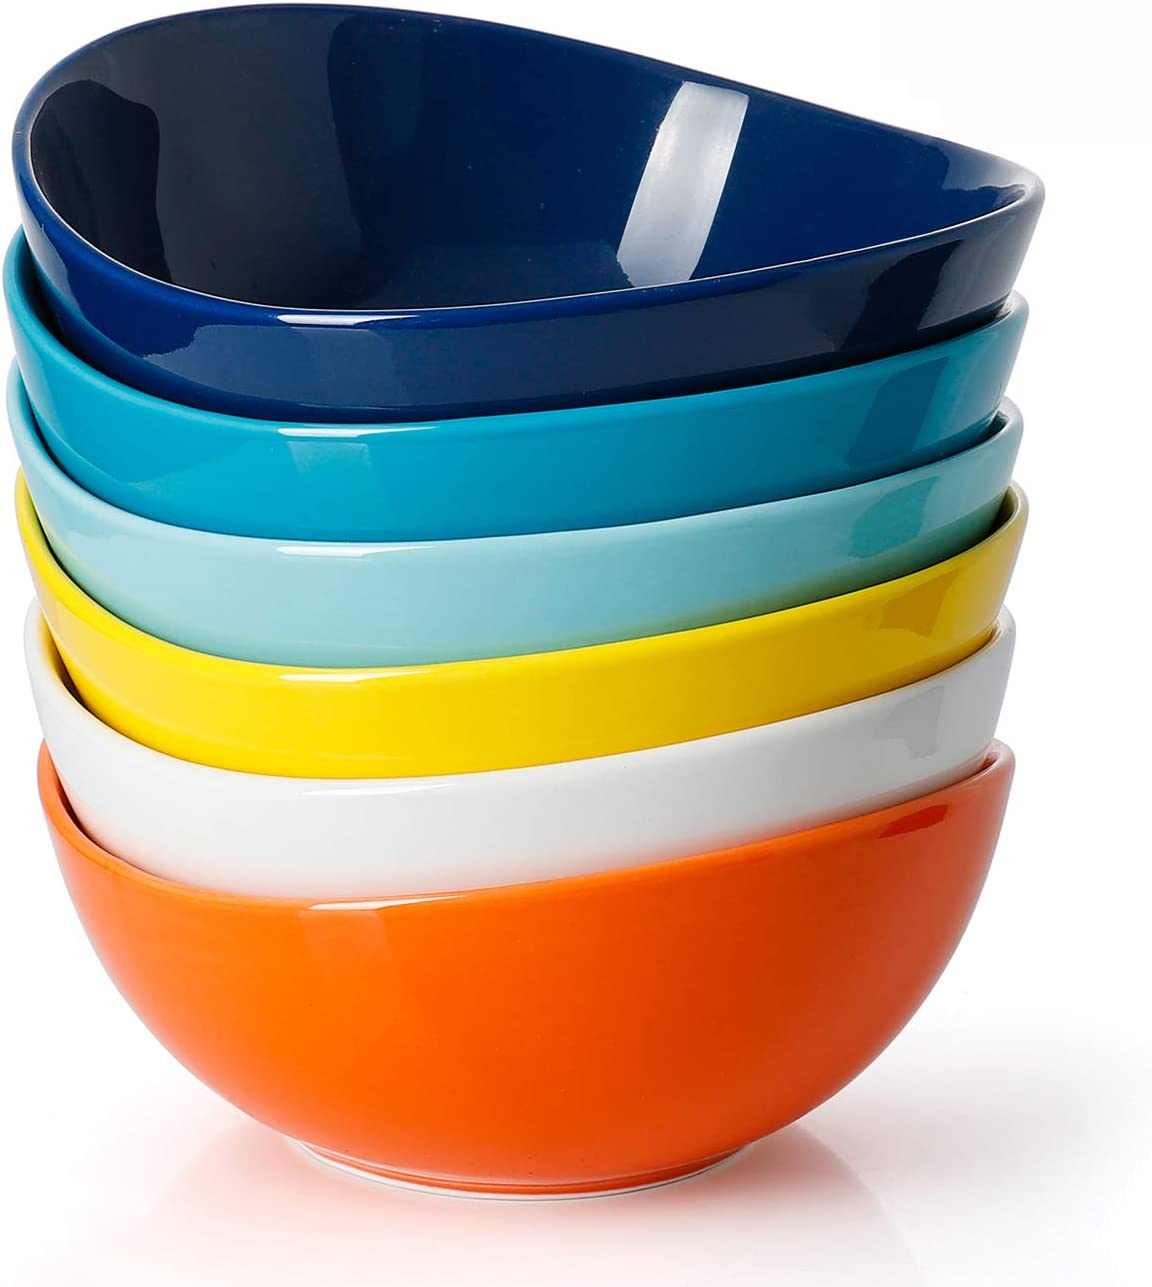 Sweese 102.002 Porcelain Bowls - 18 Ounce for Cereal, Salad, Dessert - Set of 6, Hot Assorted Colors